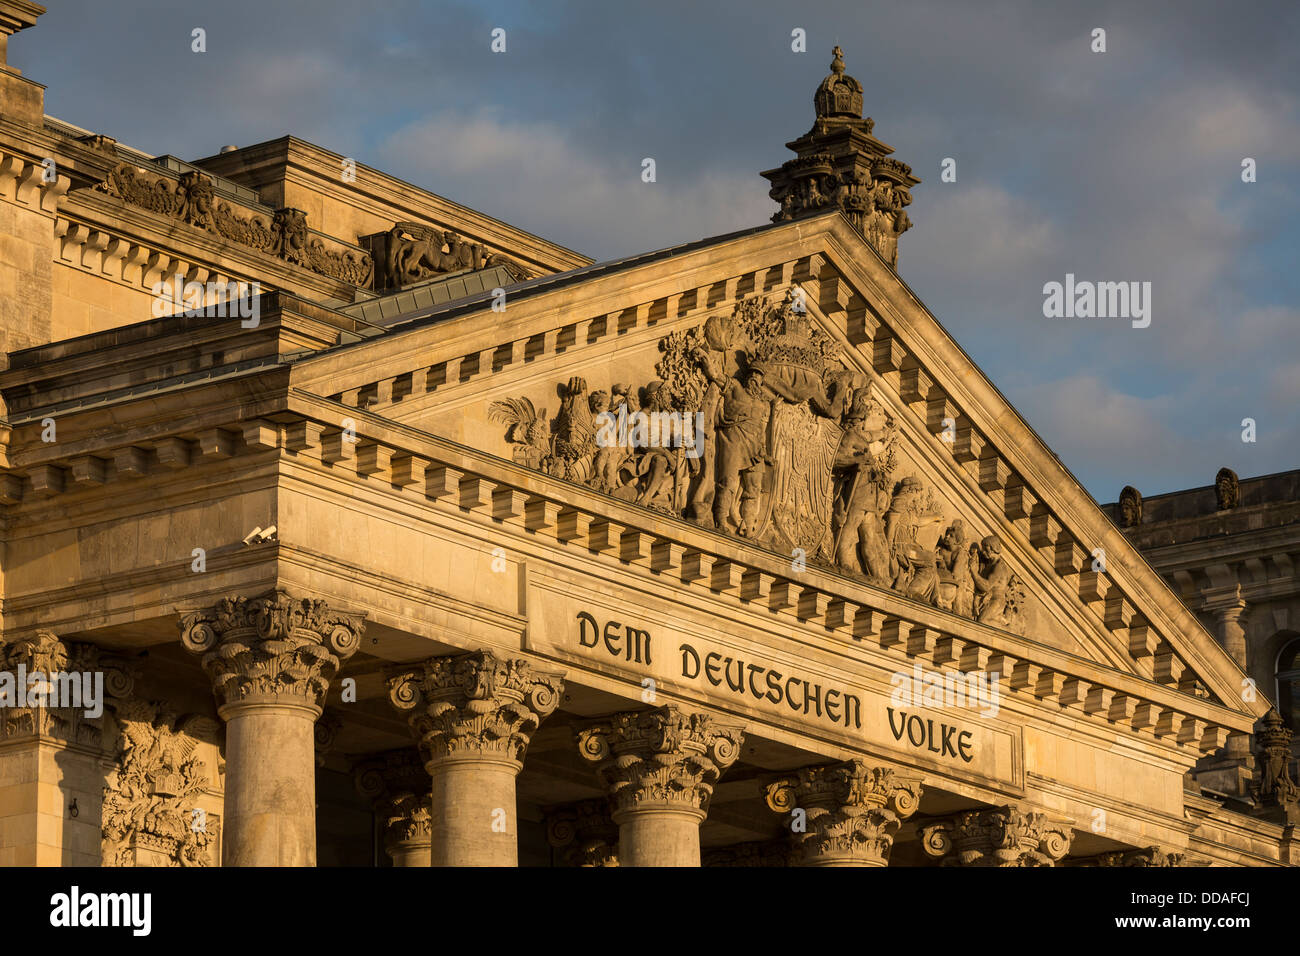 pediment of the Reichstag building, Berlin, Germany - Stock Image